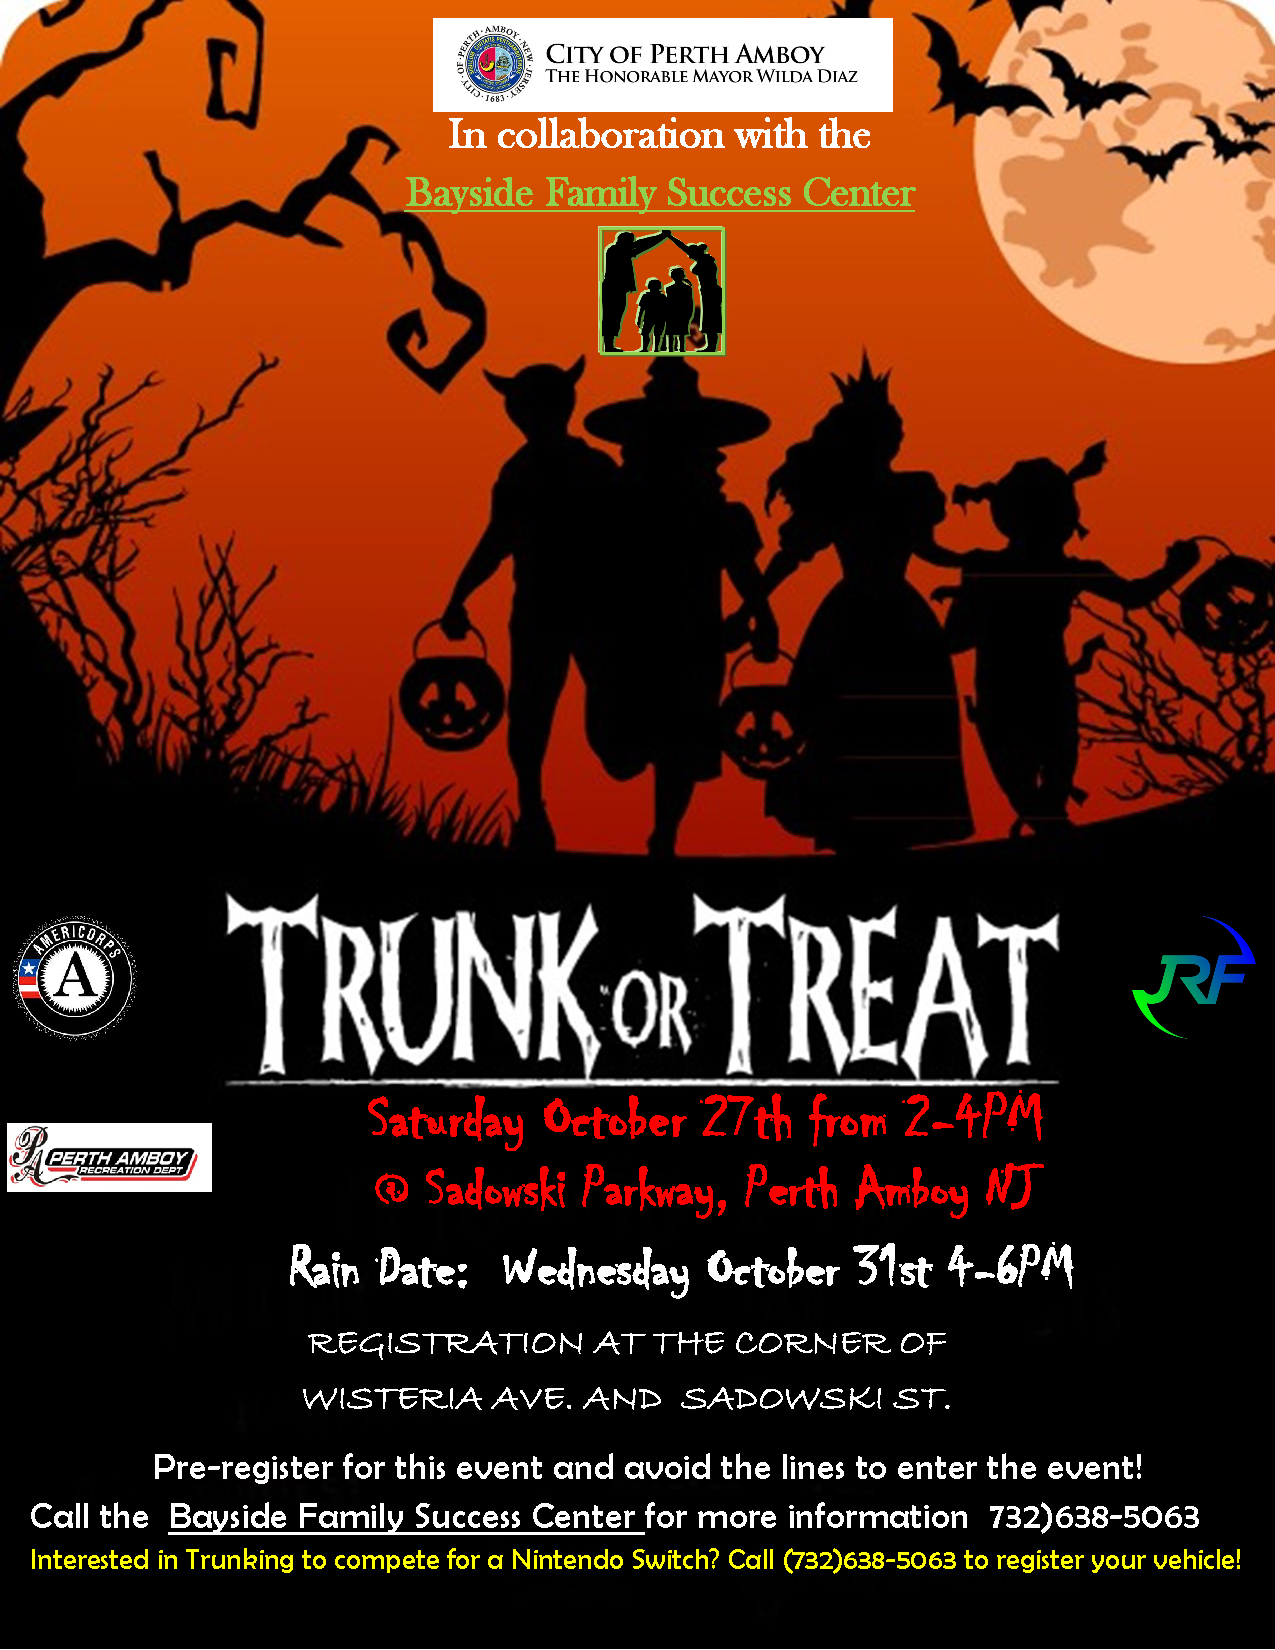 Trunk or Treat/ Judging Contest